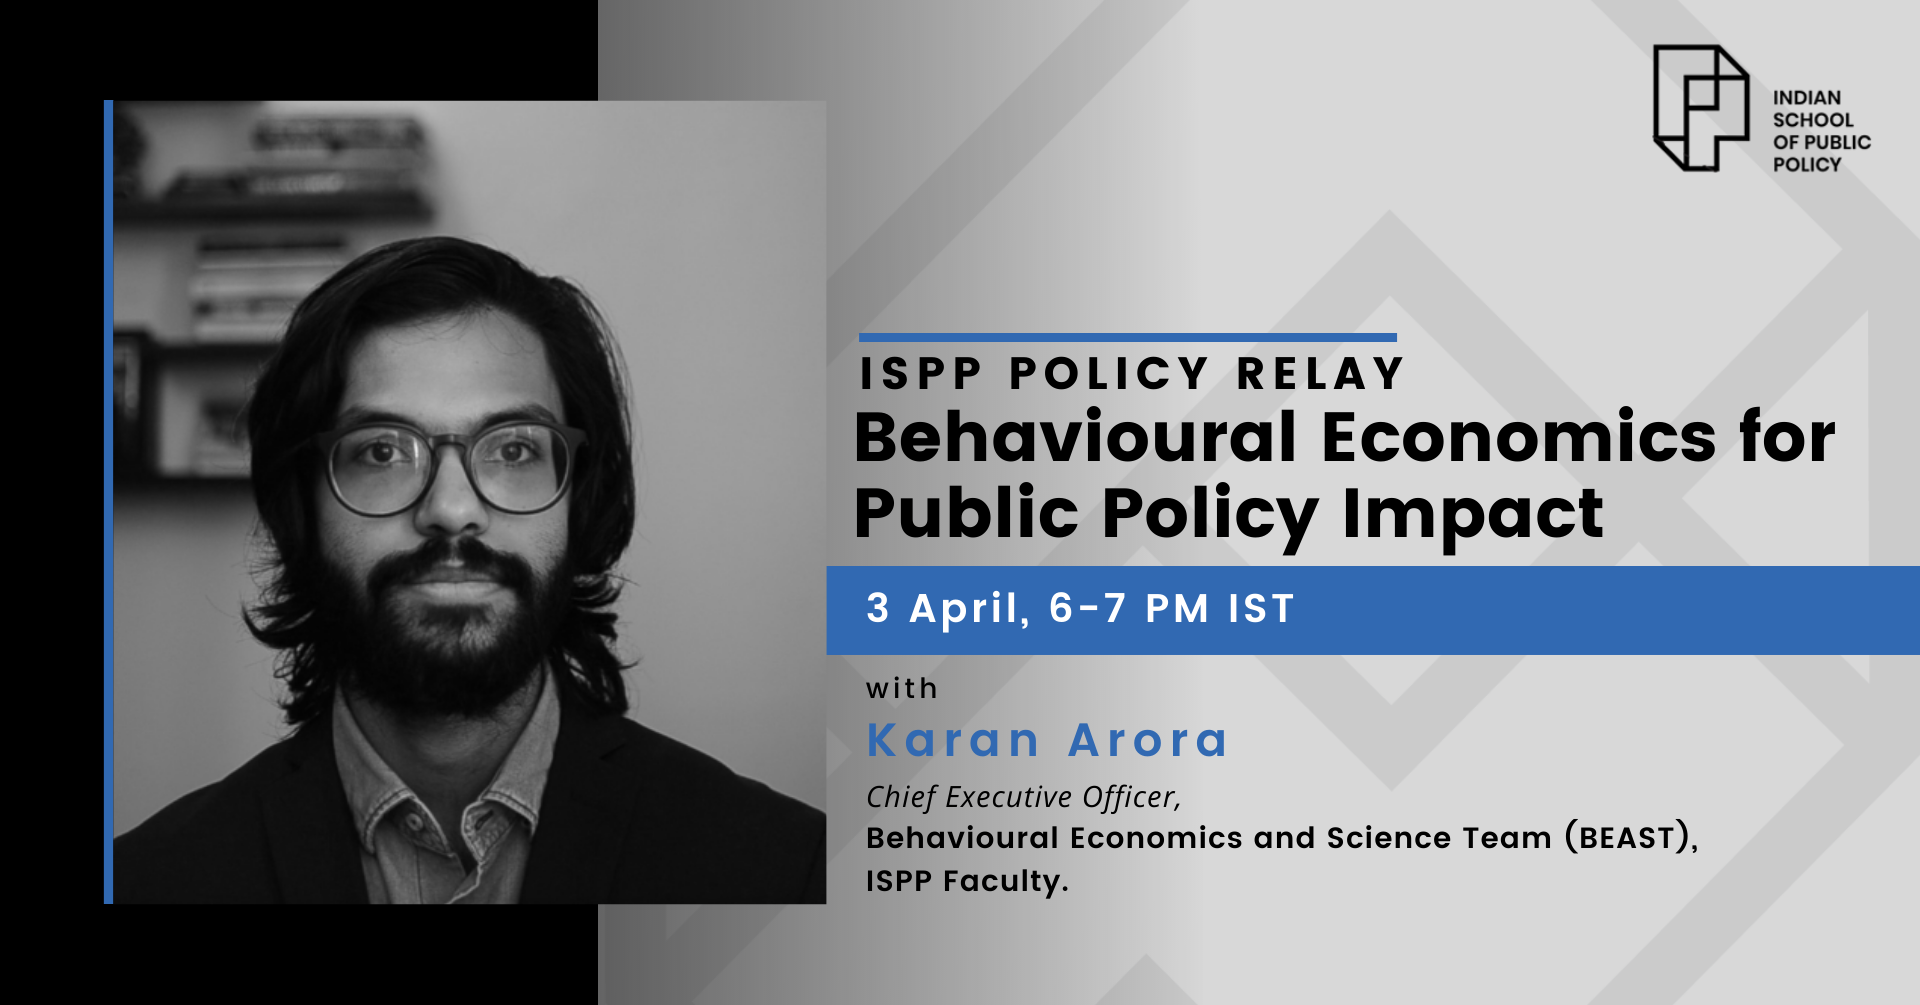 ISPP Policy Relay: Behavioral Economics for Public Policy Impact